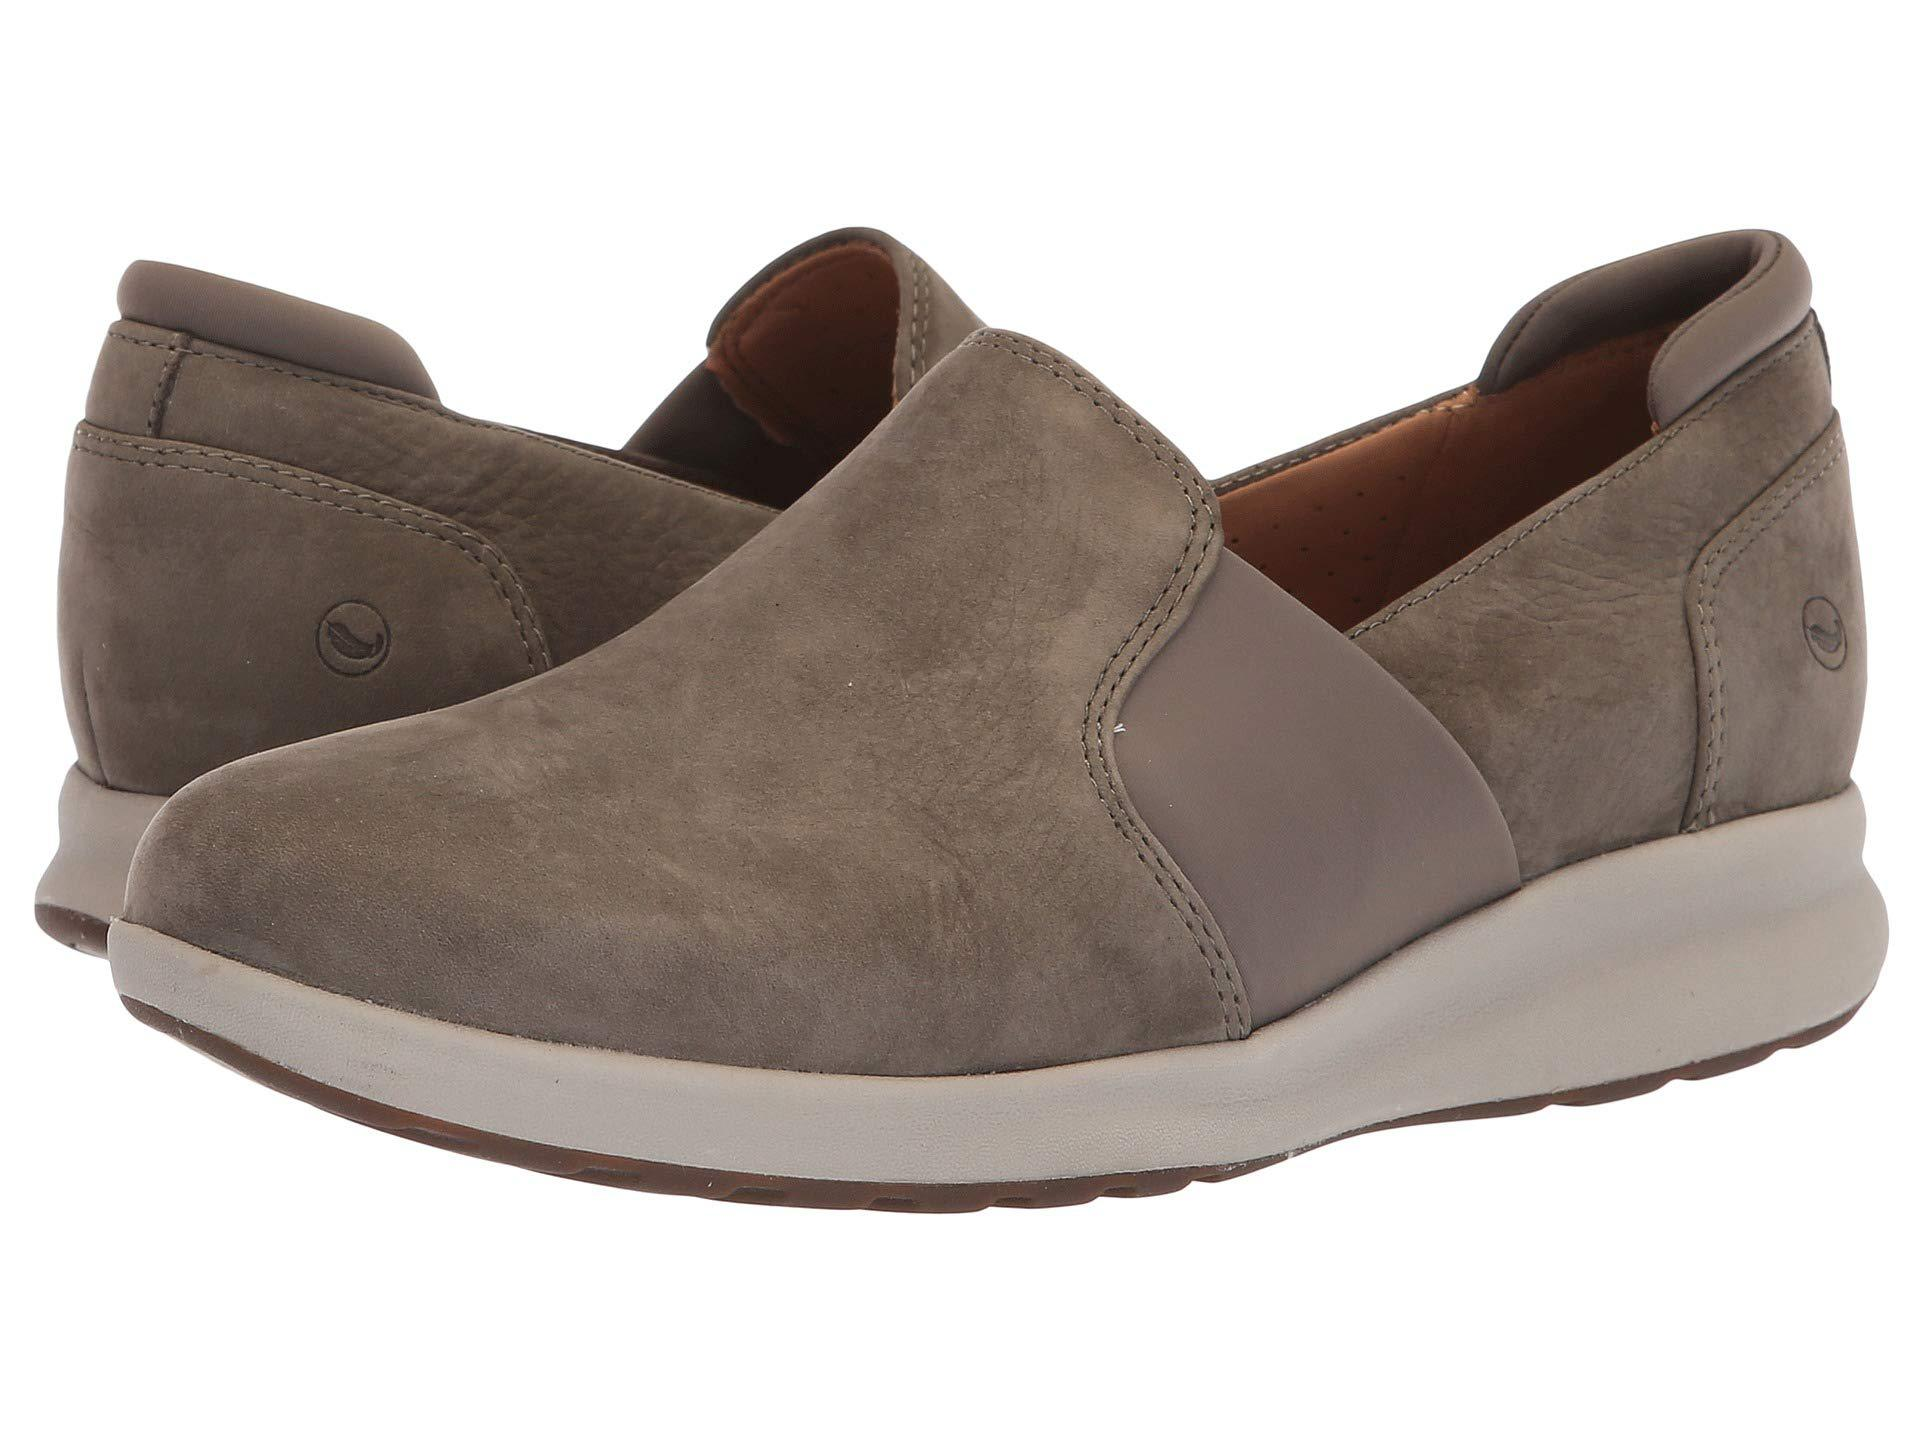 f7c7fe723b Lyst - Clarks Un Adorn Step (black Leather) Women's Shoes in Brown